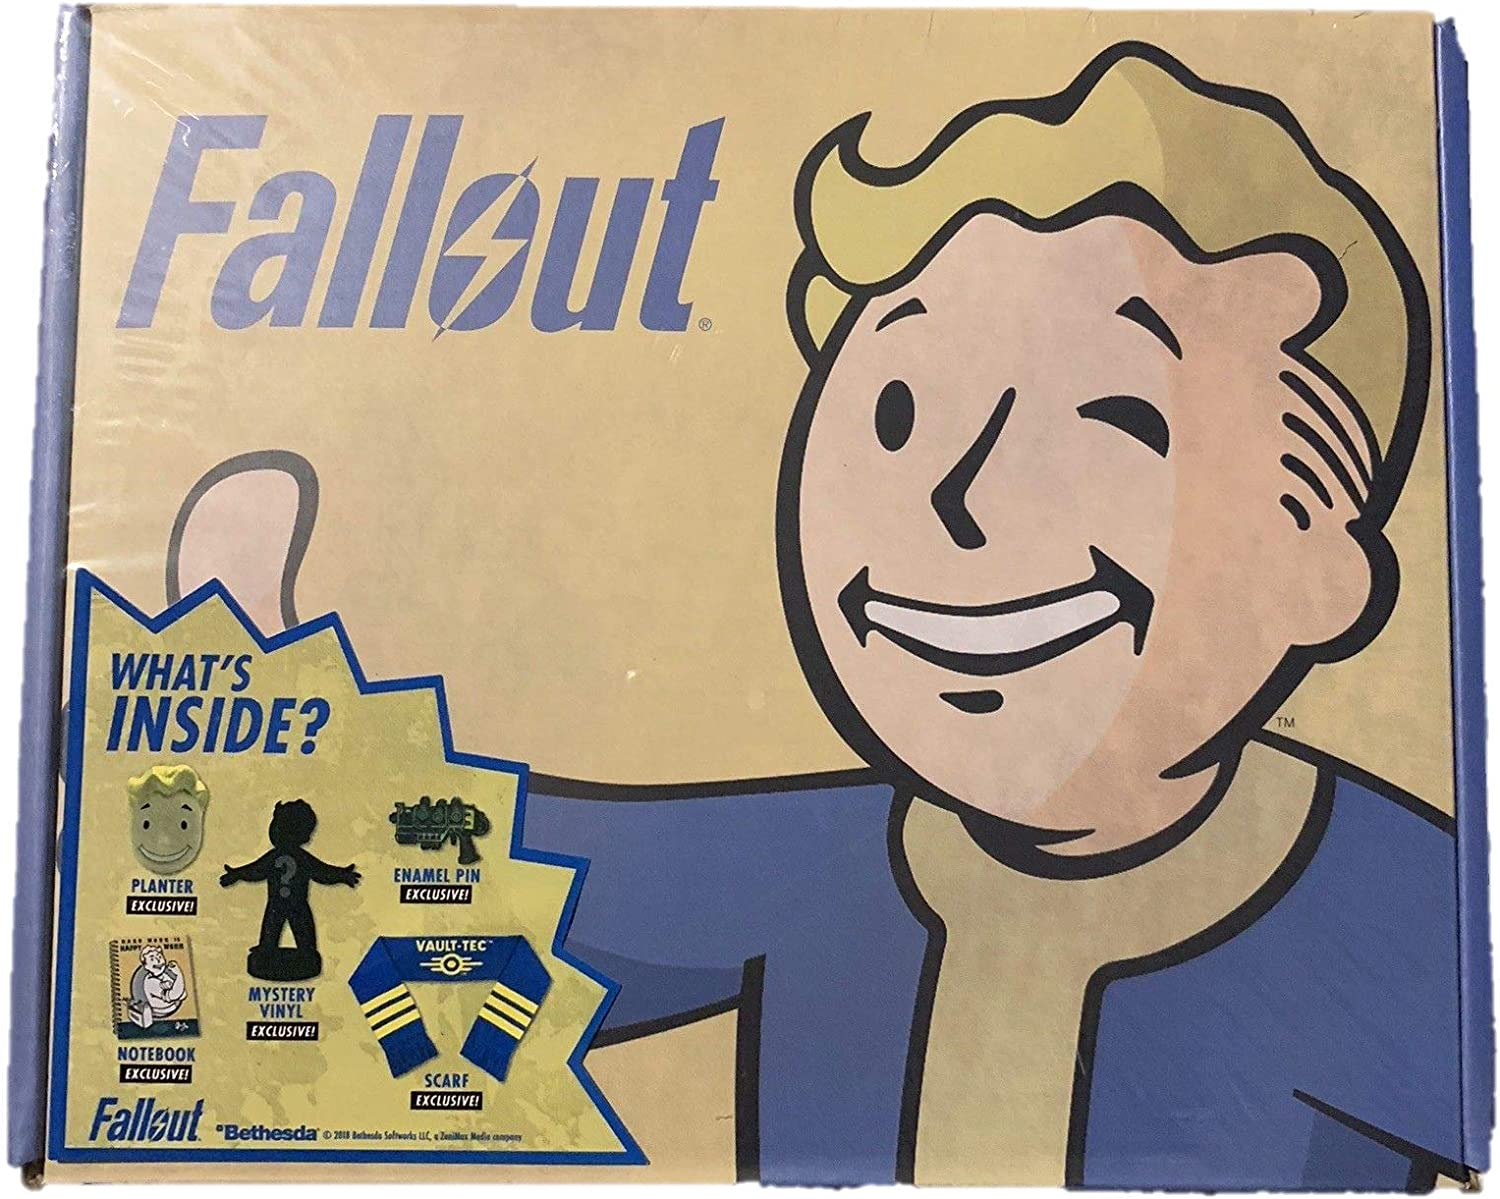 NOTEBOOK AND MYSTERY VINYL PLANTER FALLOUT BETHESDA LOOT BOX PIN SCARF